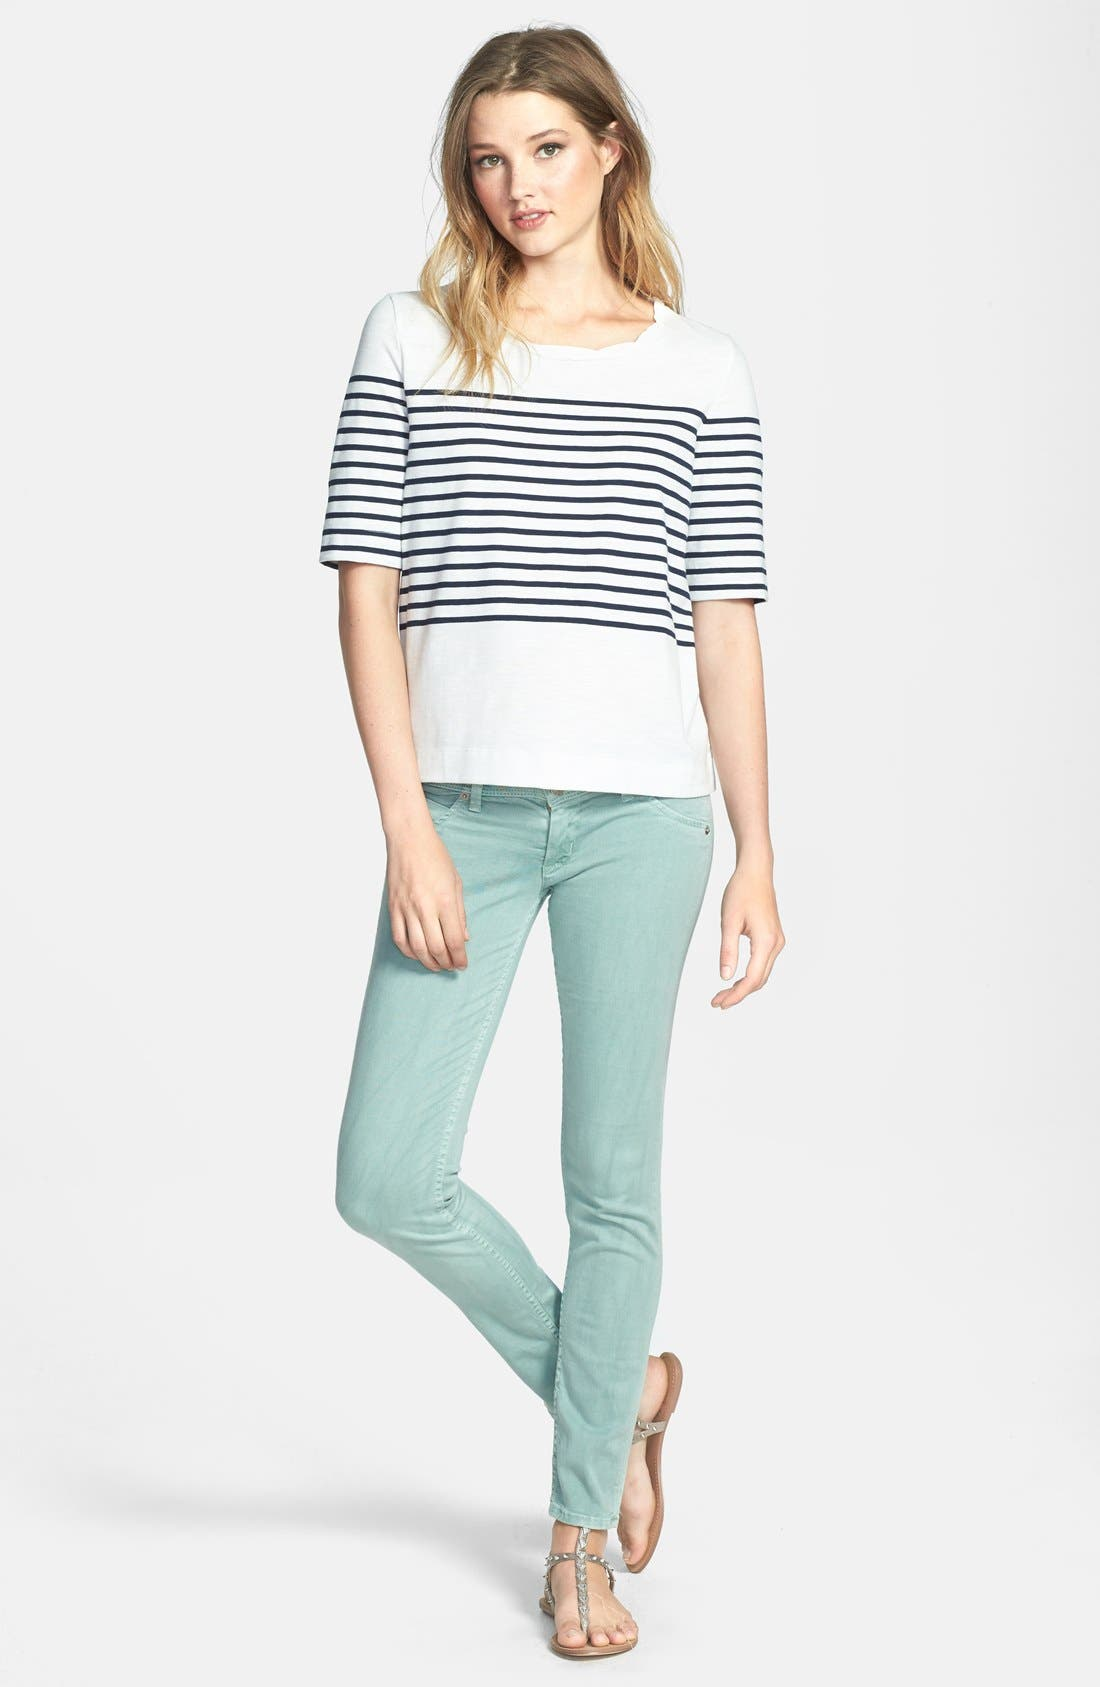 HUDSON JEANS, Skinny Stretch Jeans, Main thumbnail 1, color, 332